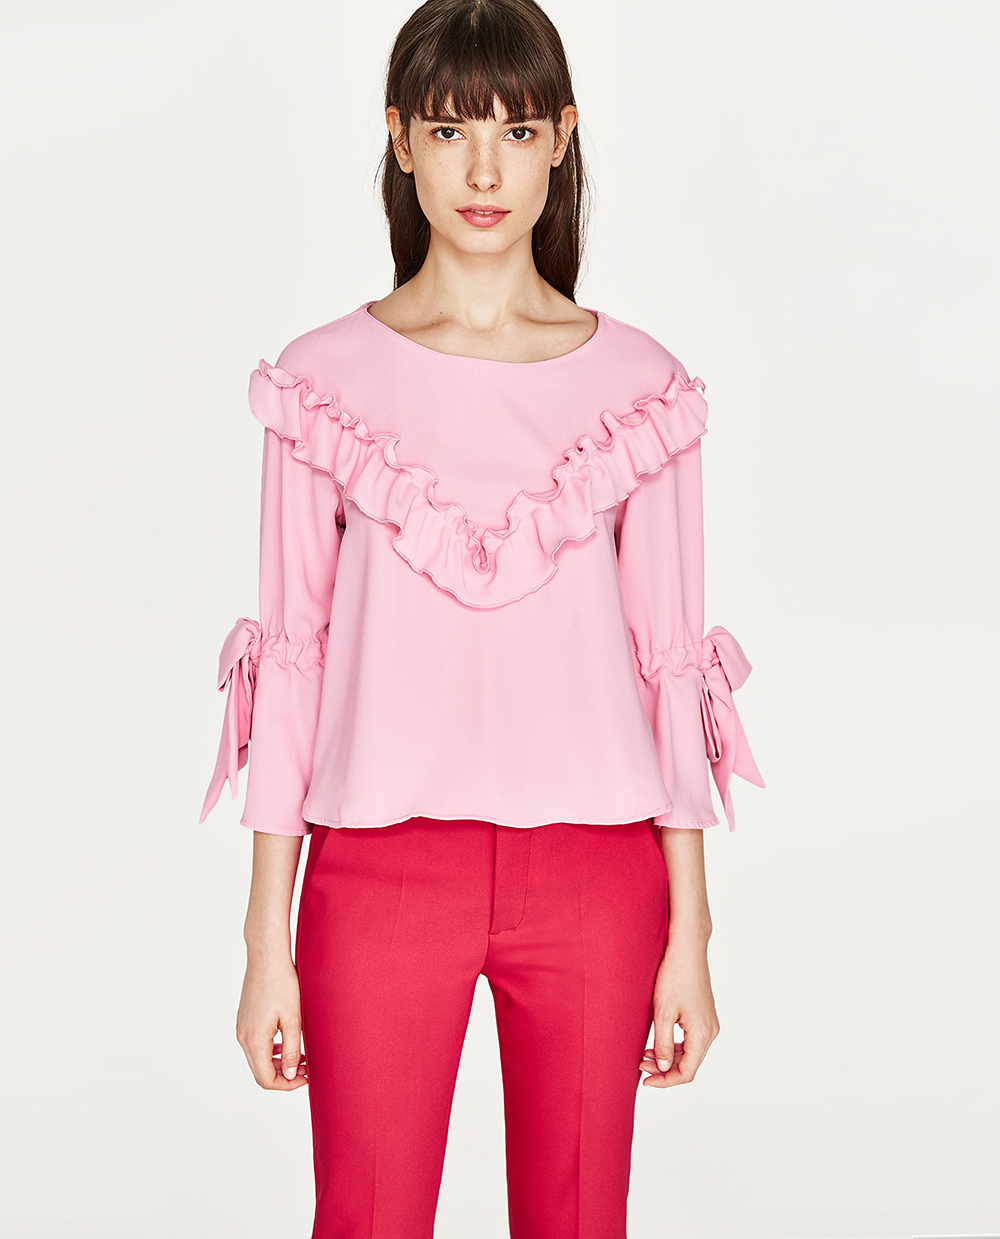 Zara Frilly Blouse - Statement Sleeves